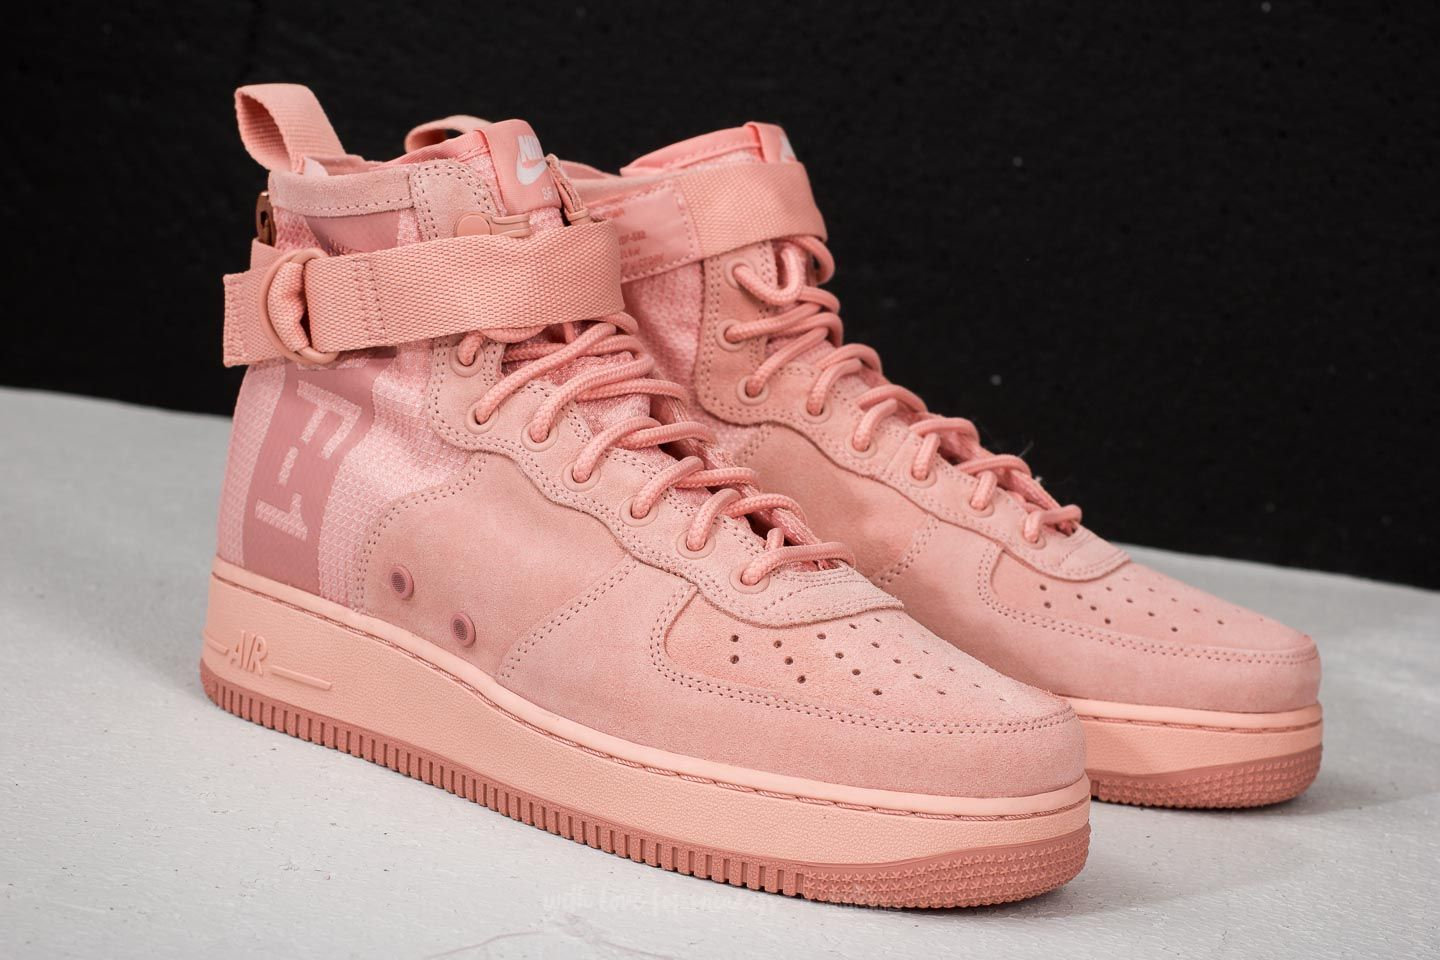 Nike SF Air Force 1 Mid Suede Coral Stardust/ Red Stardust | Footshop